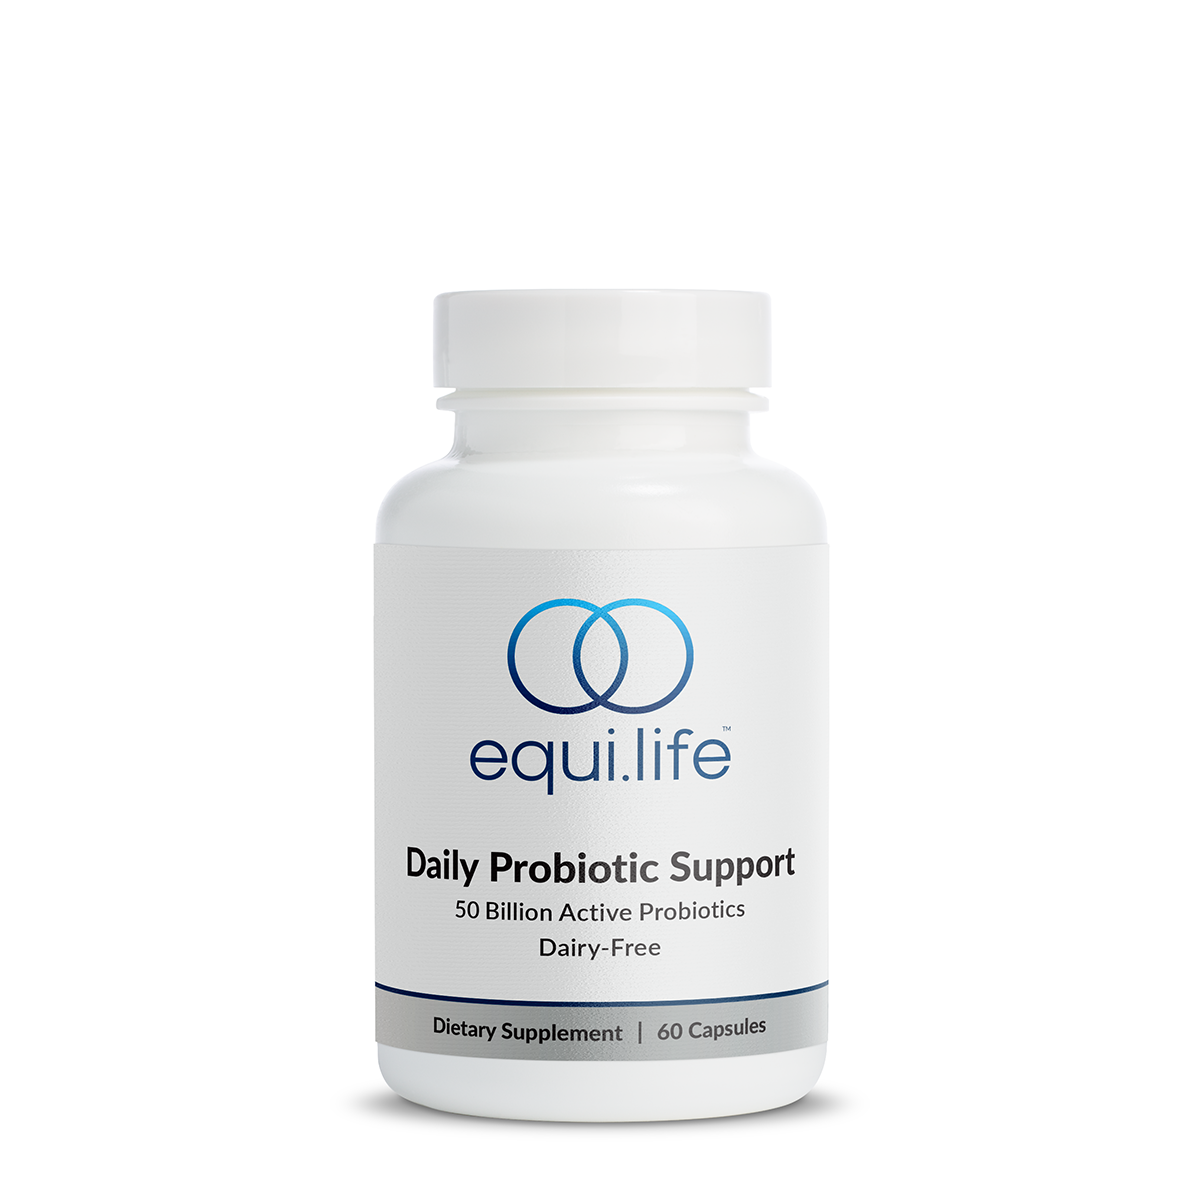 Daily Probiotic Support